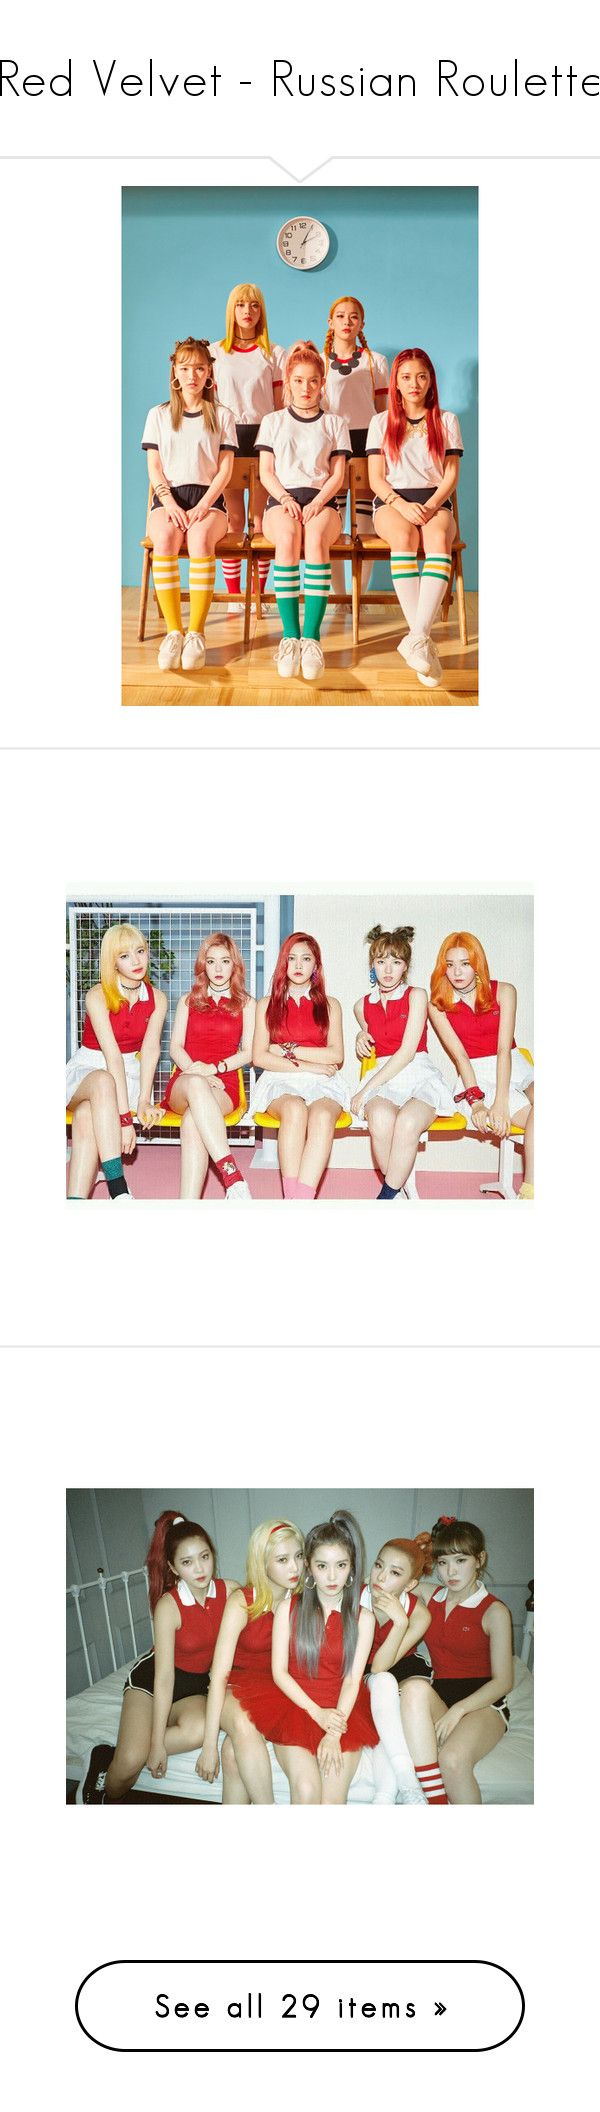 """""""Red Velvet - Russian Roulette"""" by abigailoberfoell ❤ liked on Polyvore featuring kpop, backgrounds, red velvet, girls, people, yeri, home, home decor, red home accessories and red home decor"""